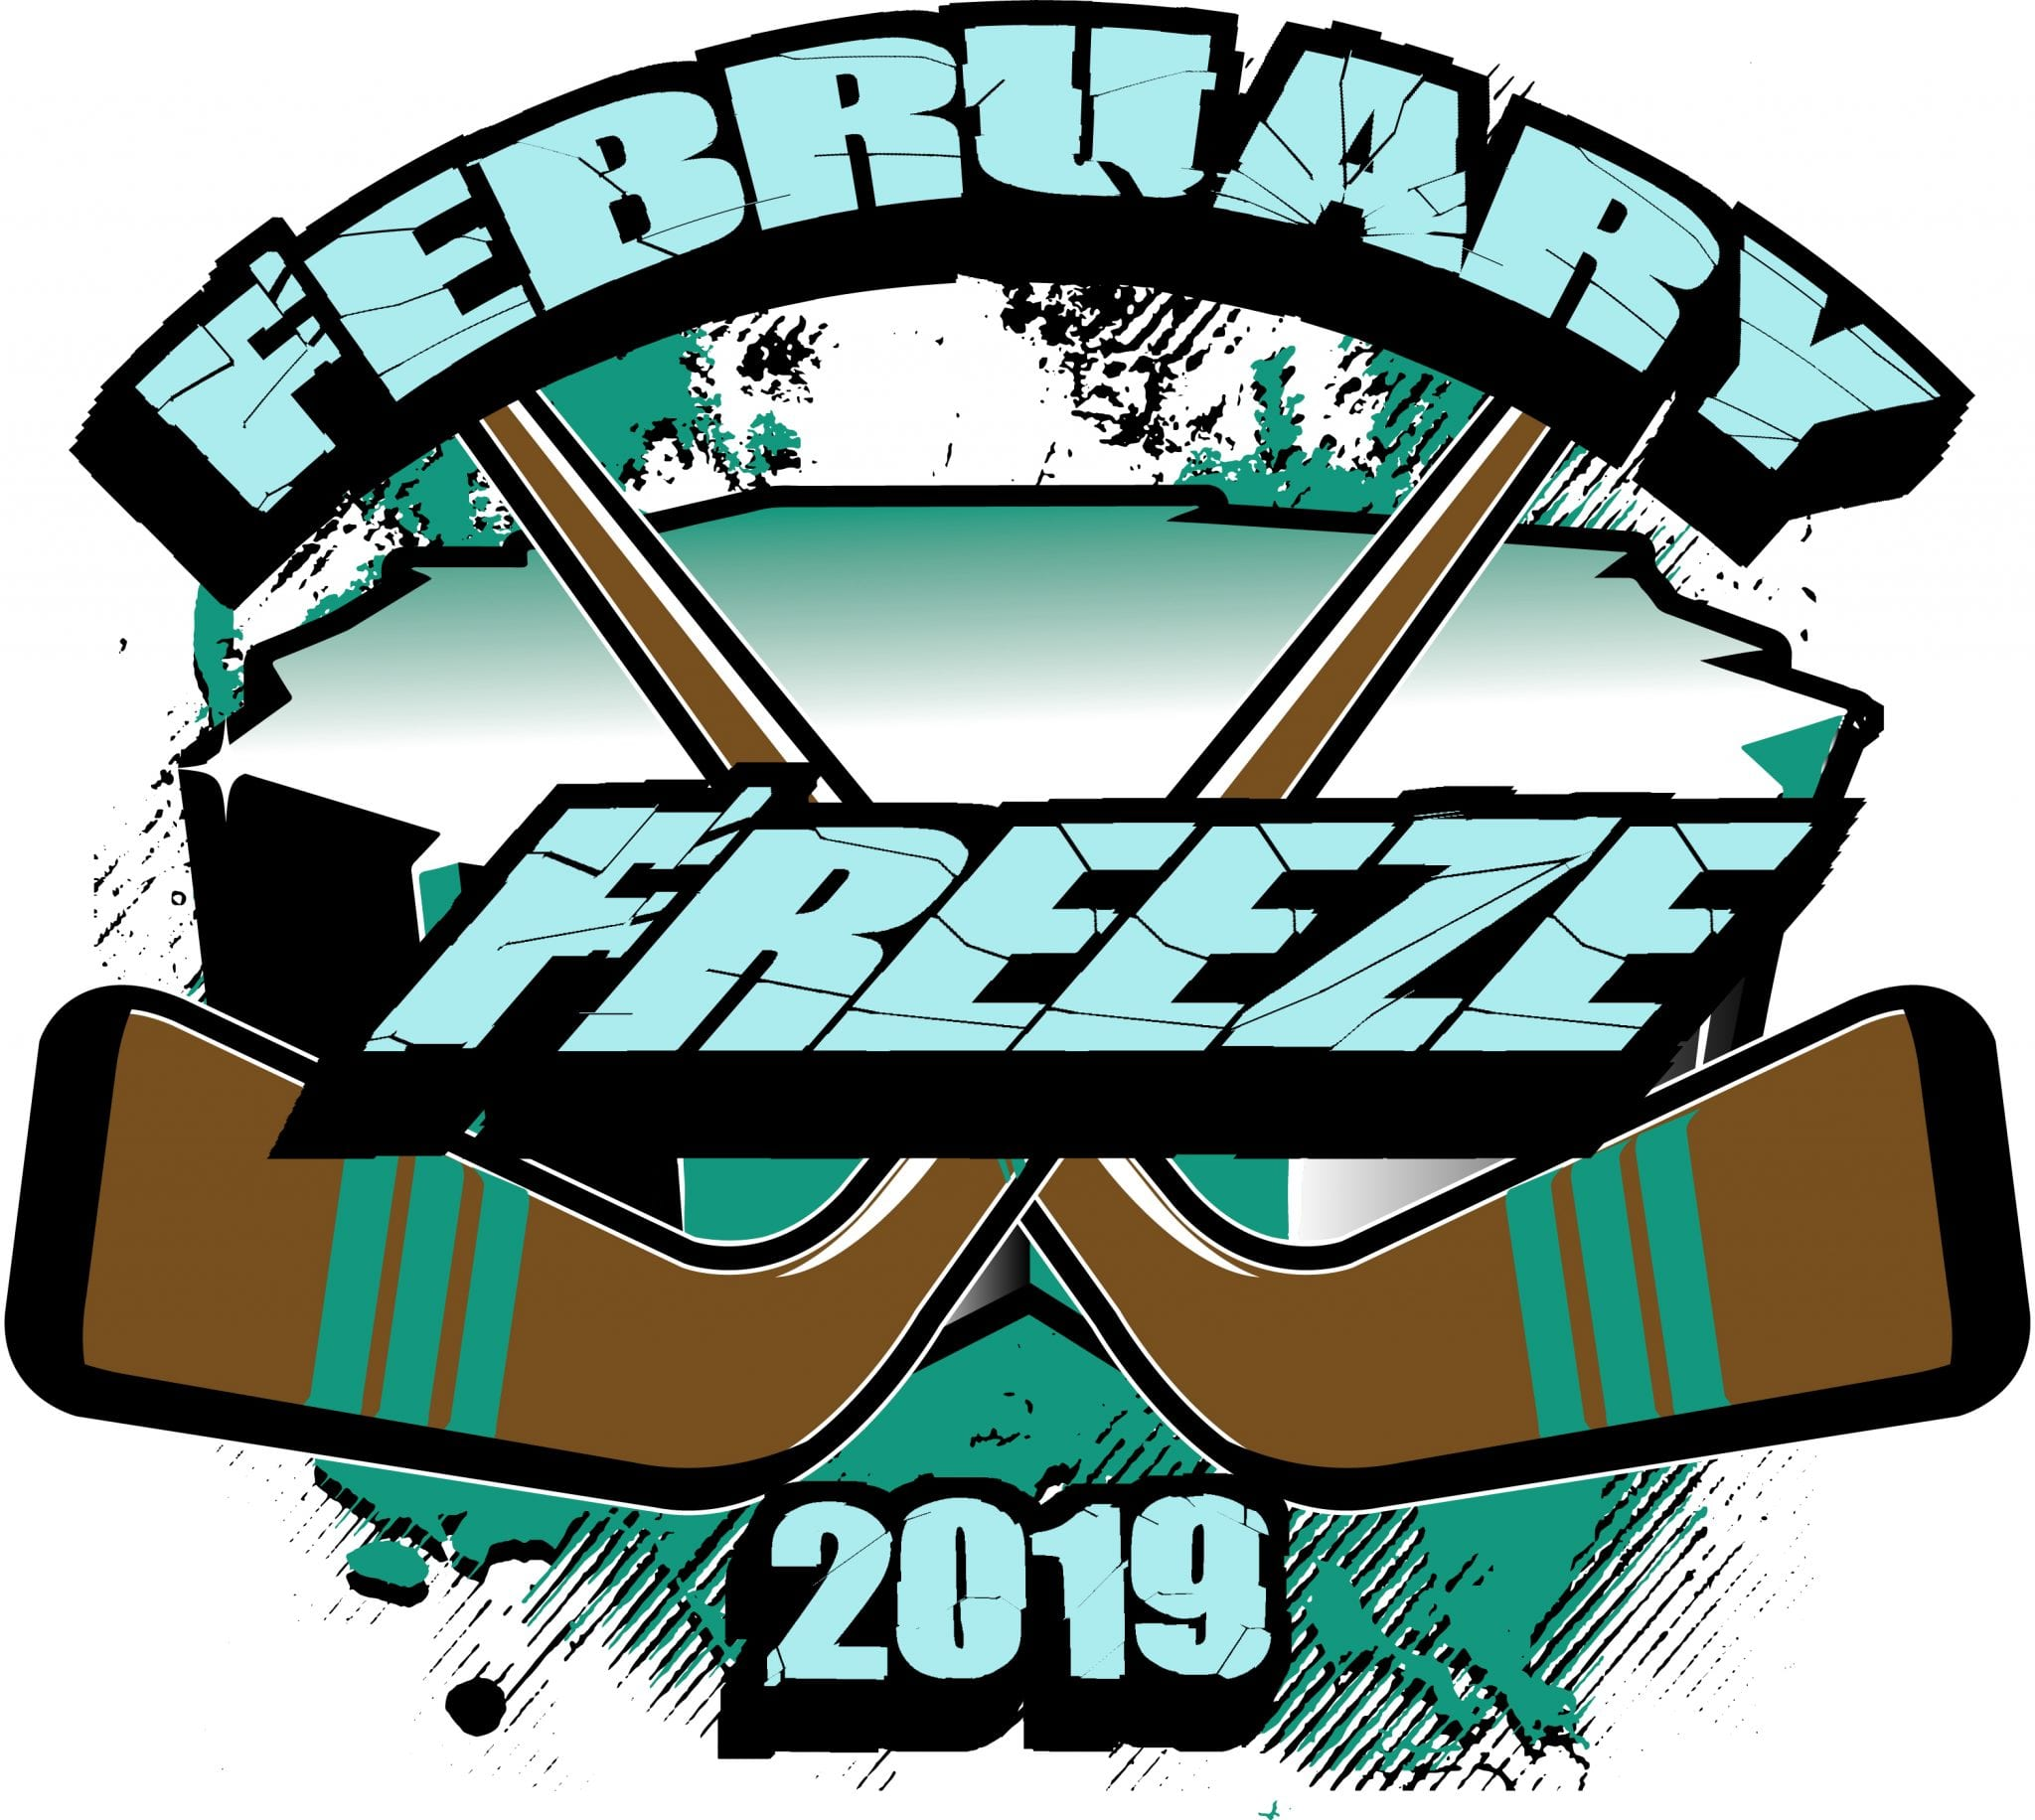 HOCKEY FEBRUARY FREEZE 2019 T-shirt vector logo design for print